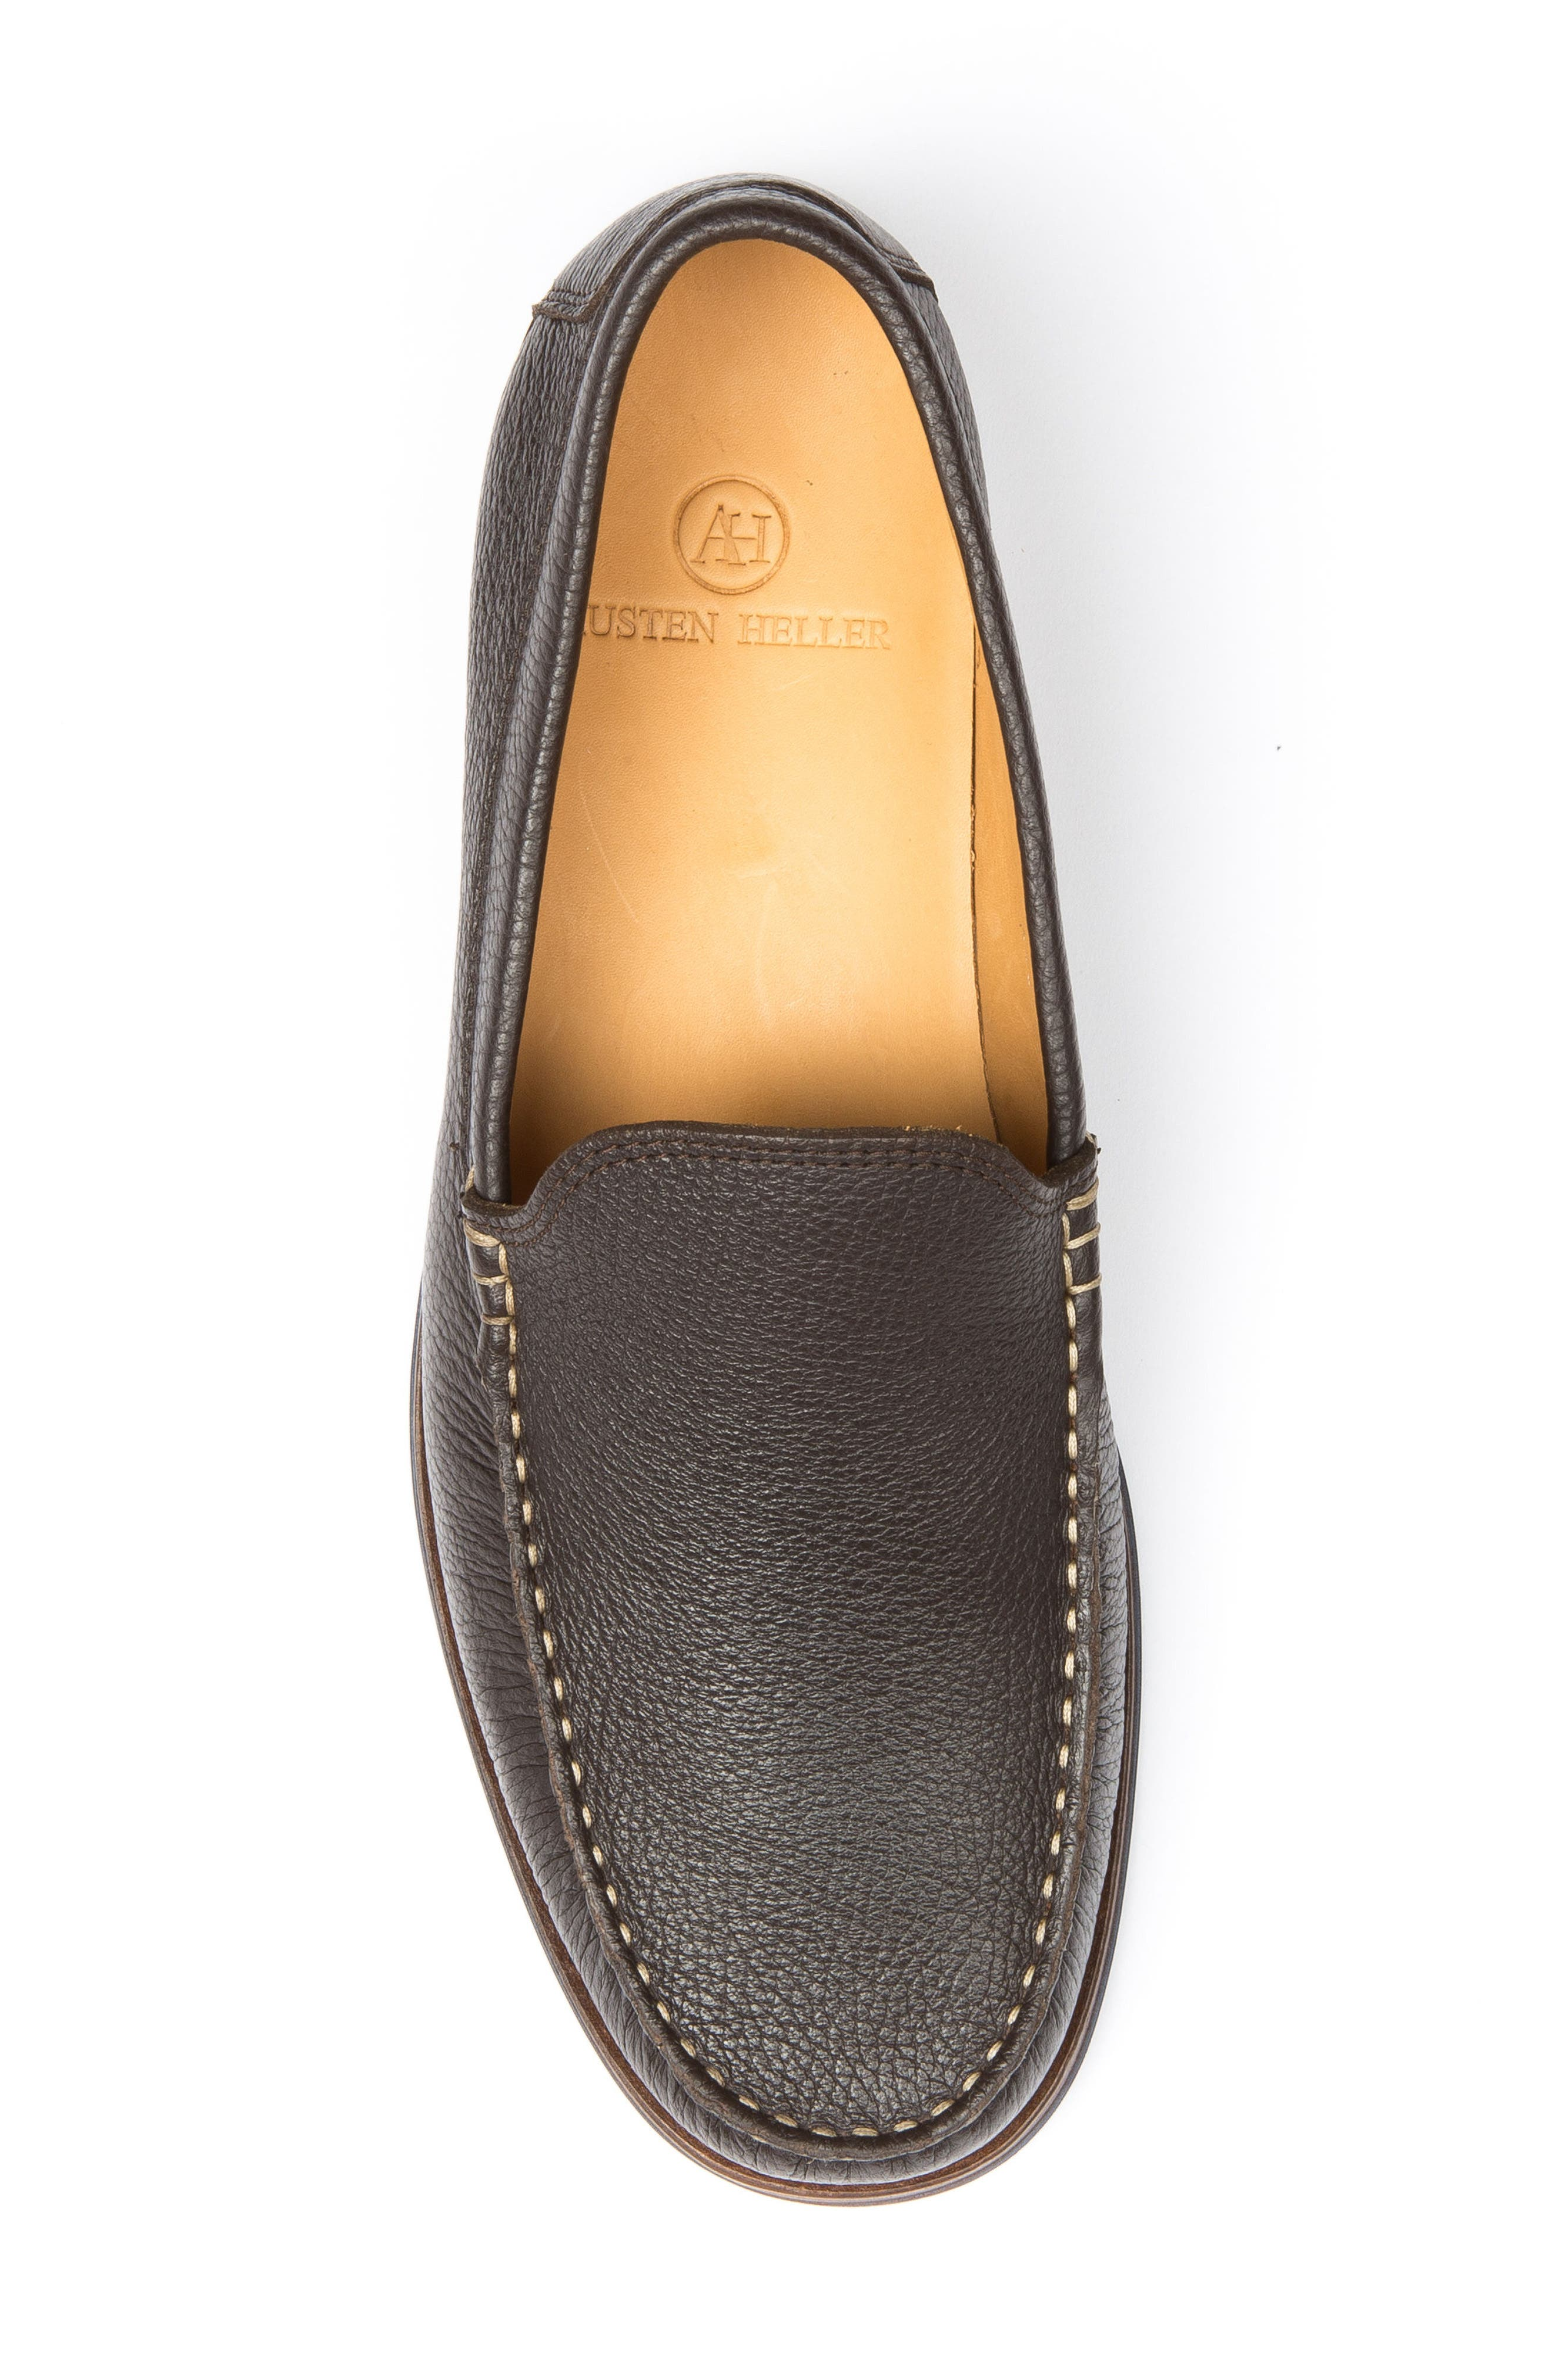 Alternate Image 5  - Austen Heller Caldwells Loafer (Men)